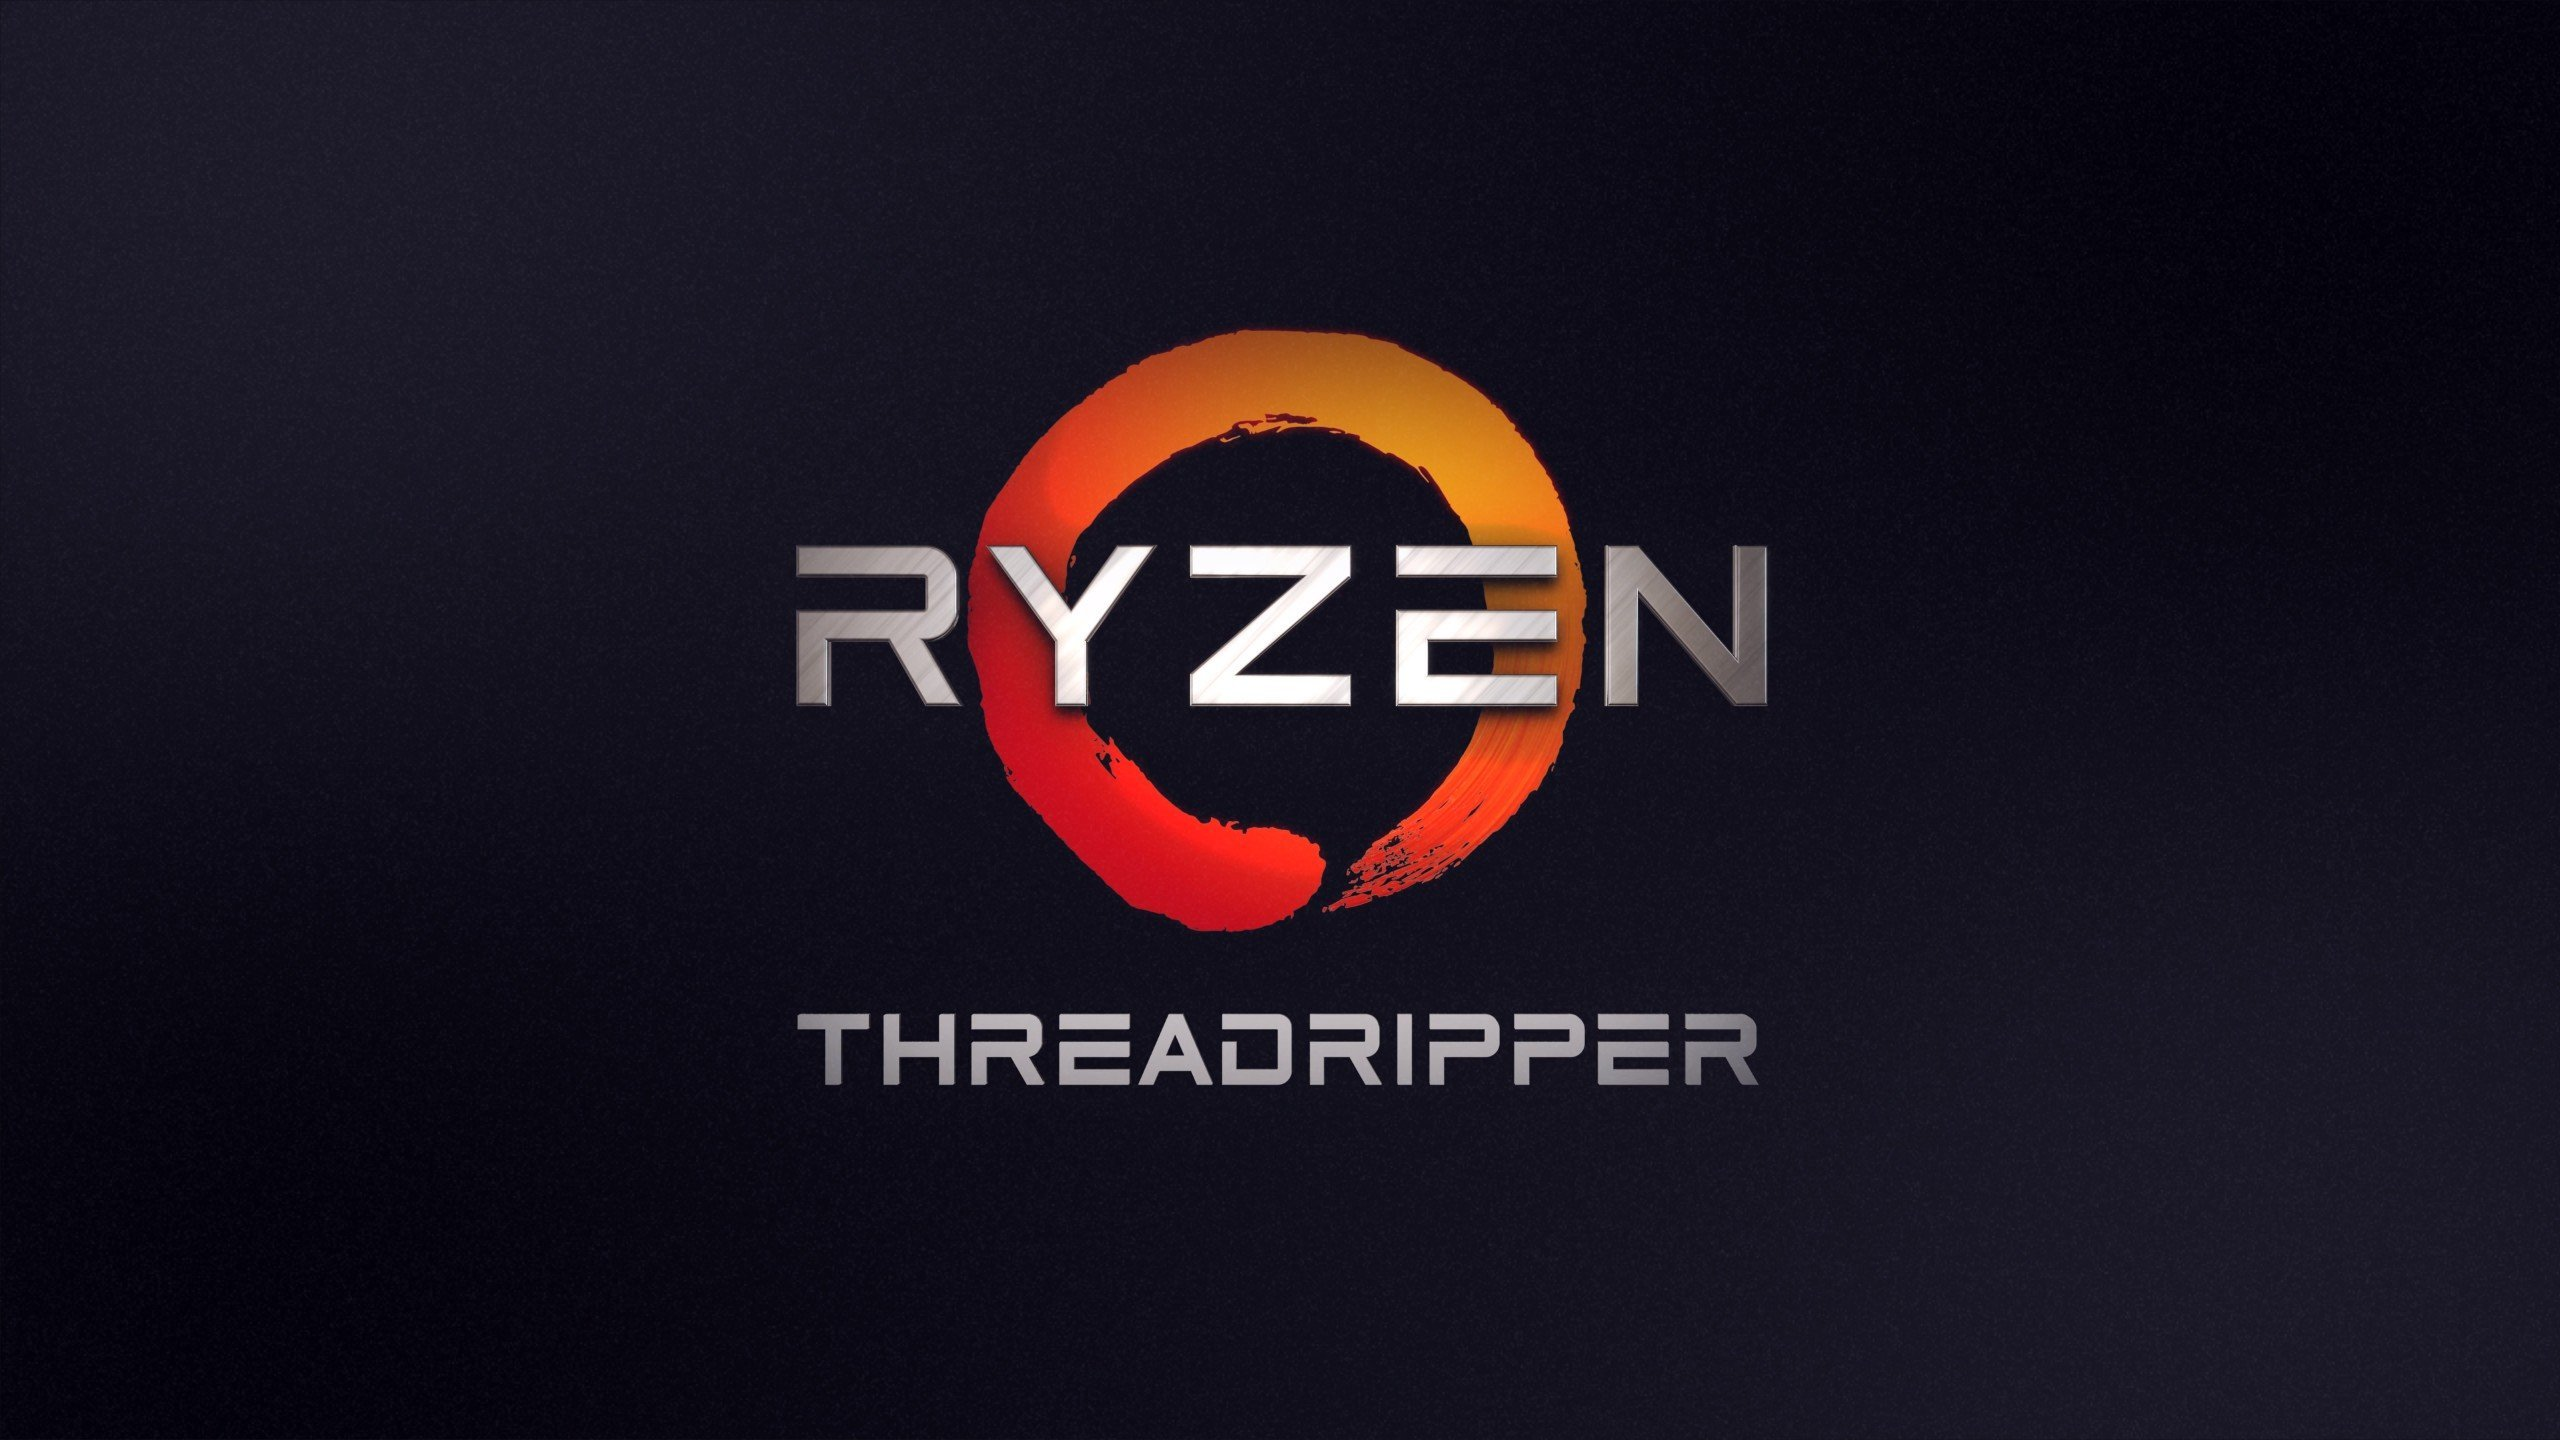 AMD : un Threadripper 3 doté de 16 cores / 32 threads repéré sur UserBenchmark